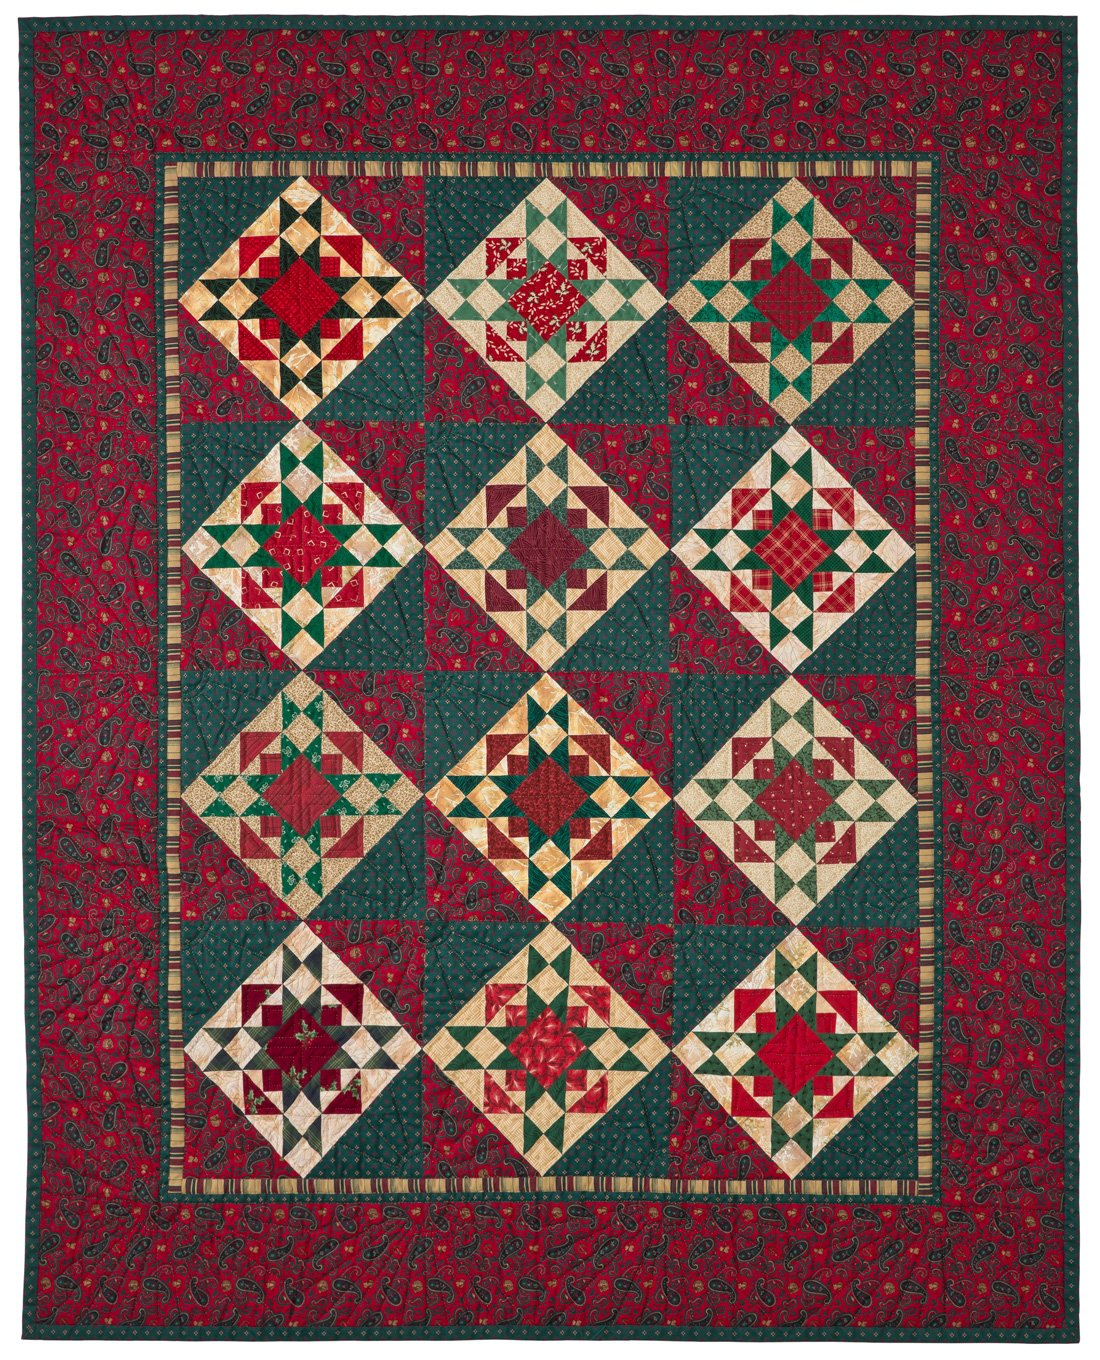 Christmas Star Quilt by Judy Hopkins